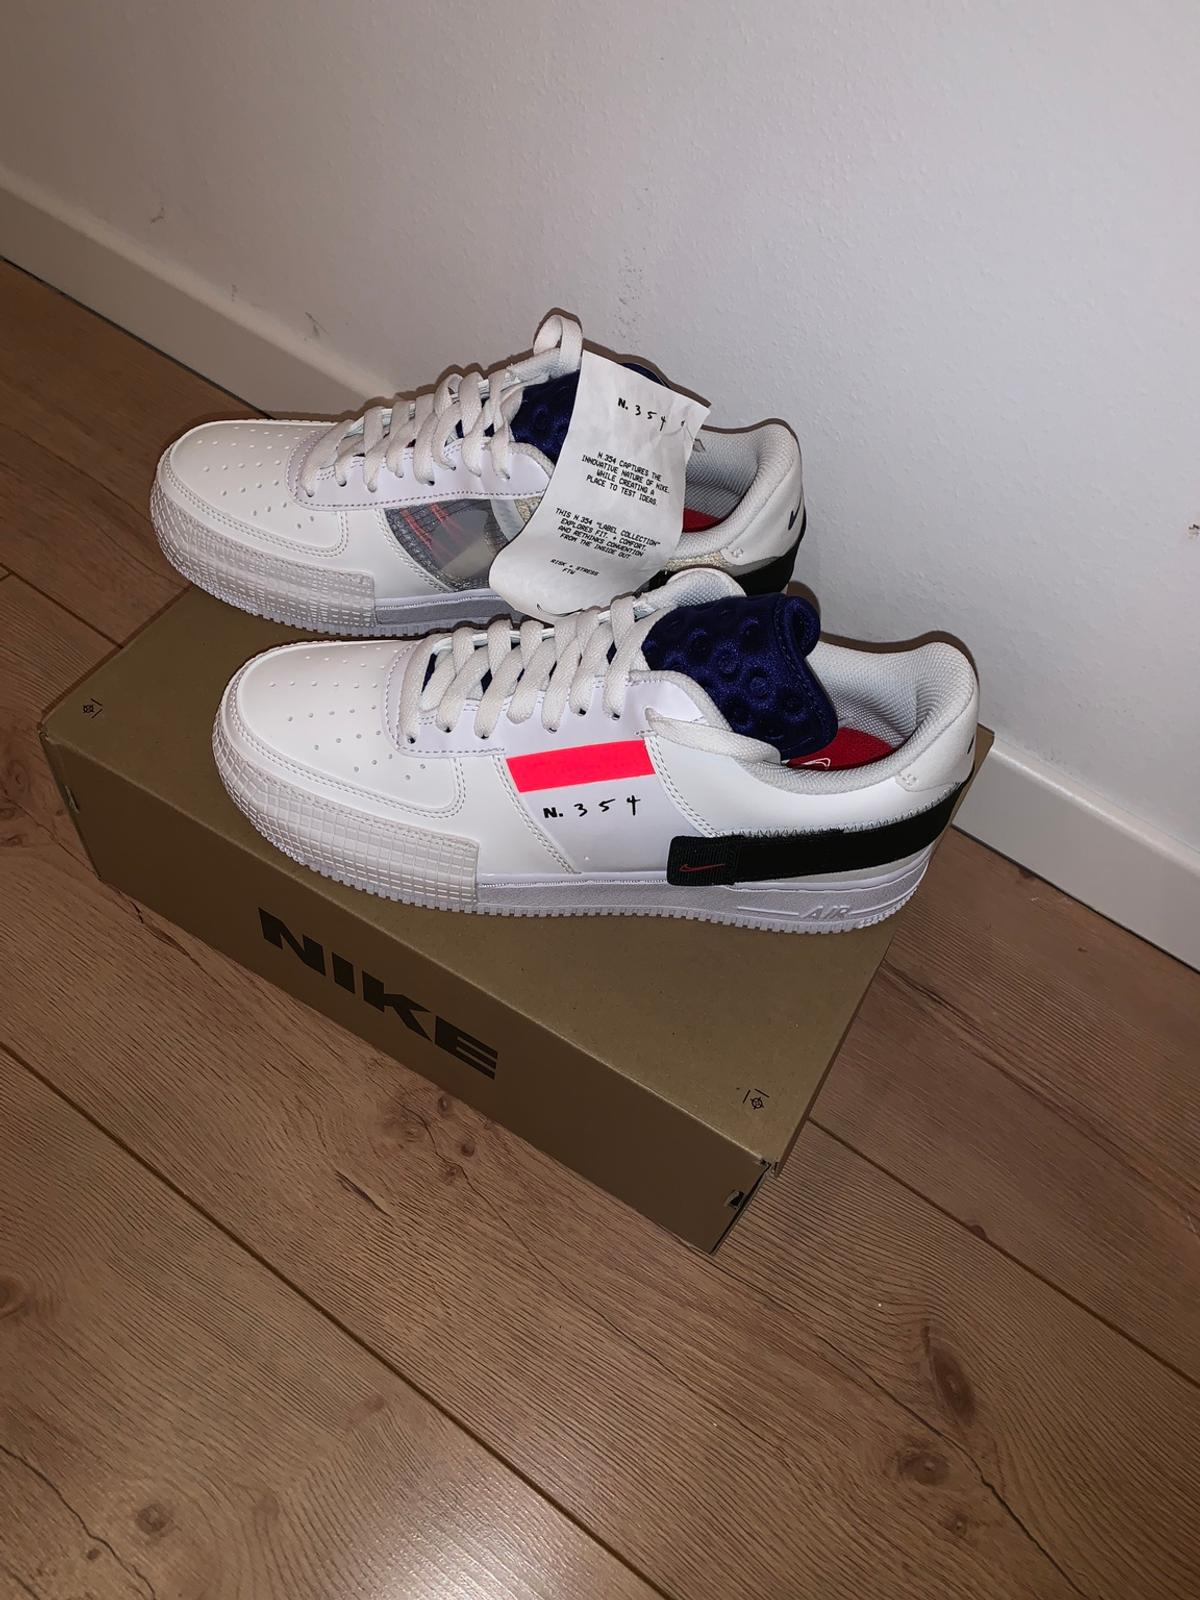 Nike AirForce 1 Low Type N.354